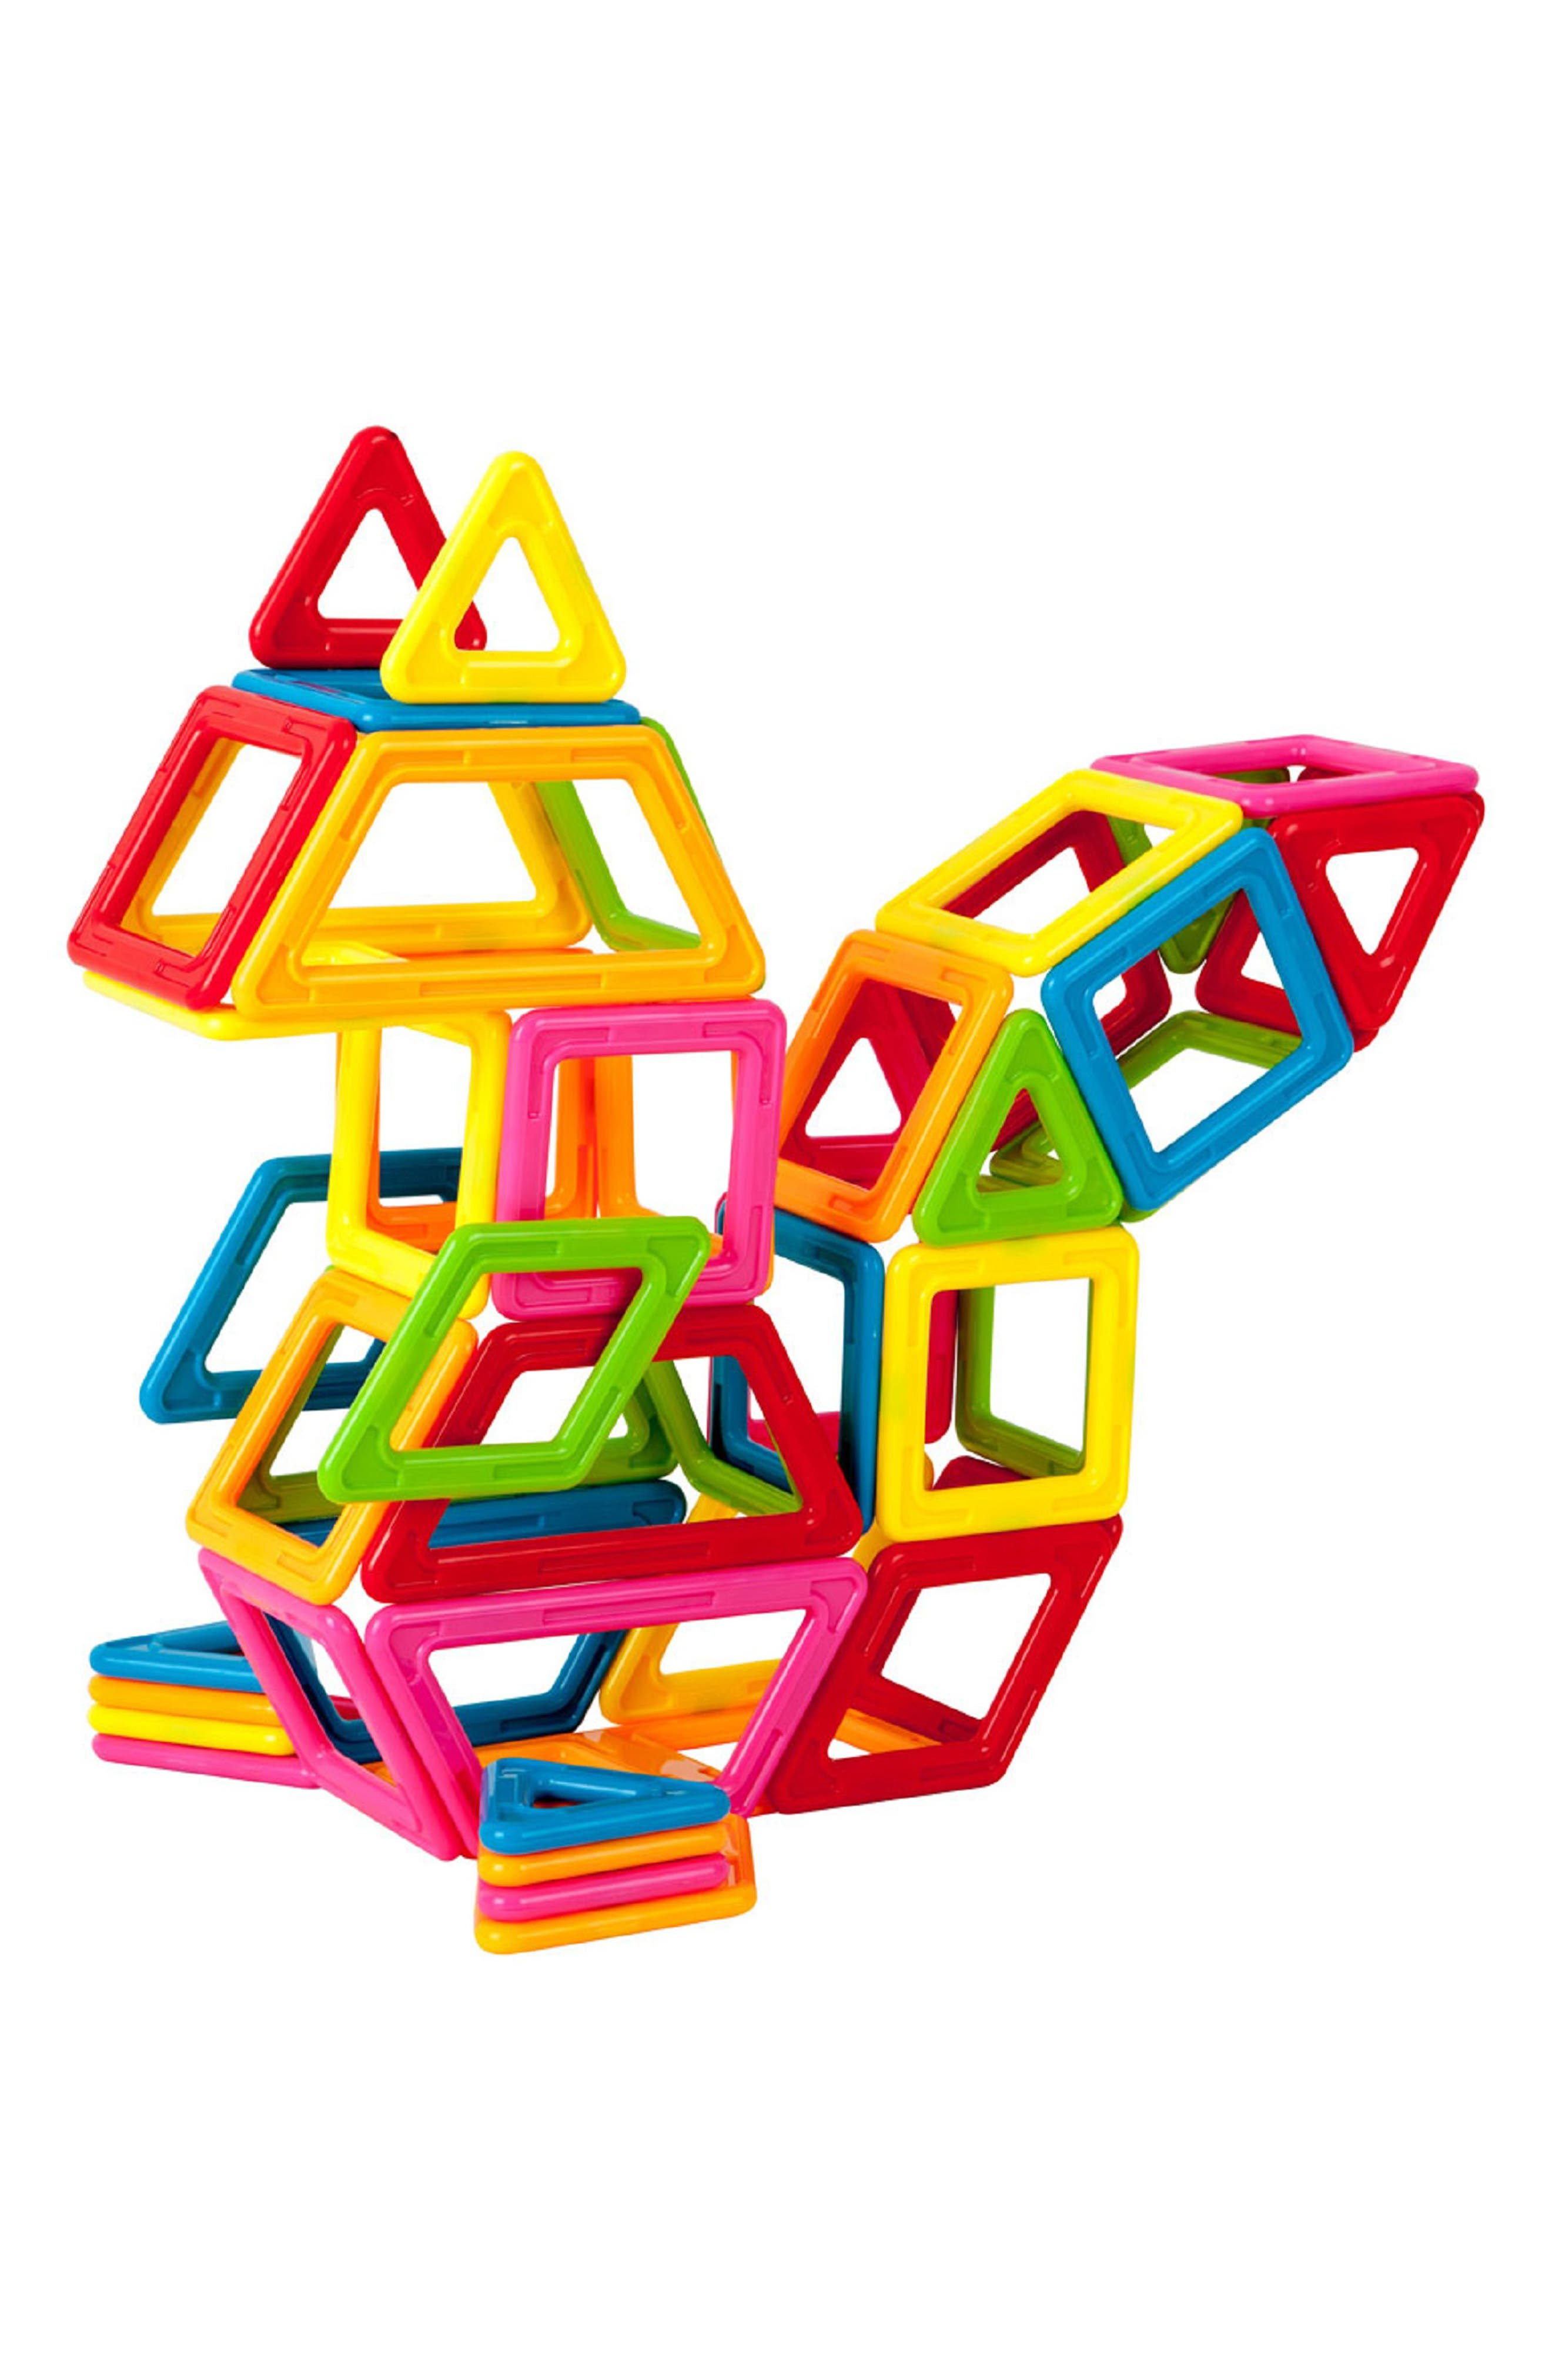 'My First' Magnetic Construction Set,                             Alternate thumbnail 2, color,                             Rainbow